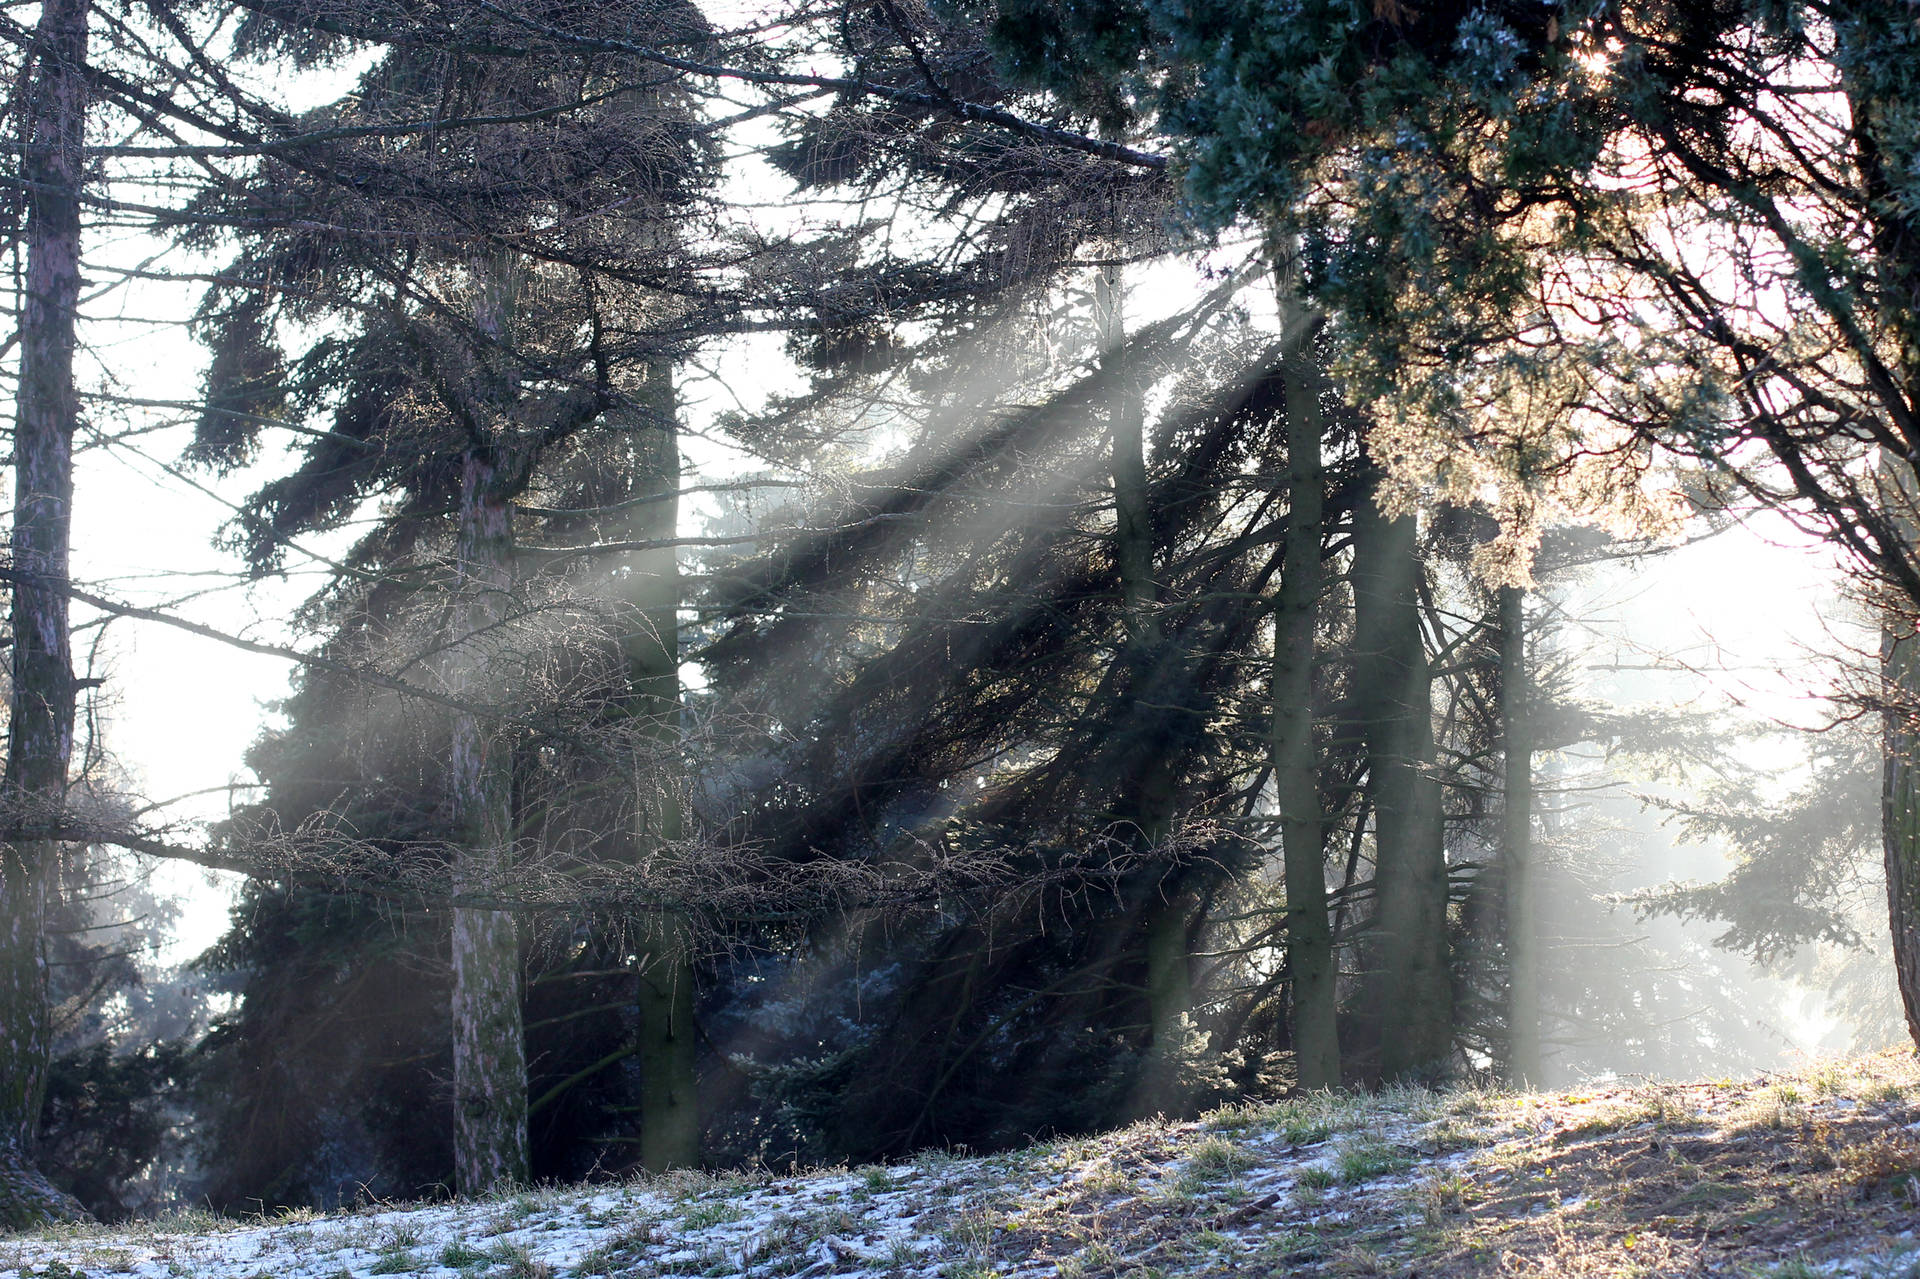 Free picture (Trees winter forest sunlight tree) from https://torange.biz/tree-sunlight-forest-winter-trees-51490